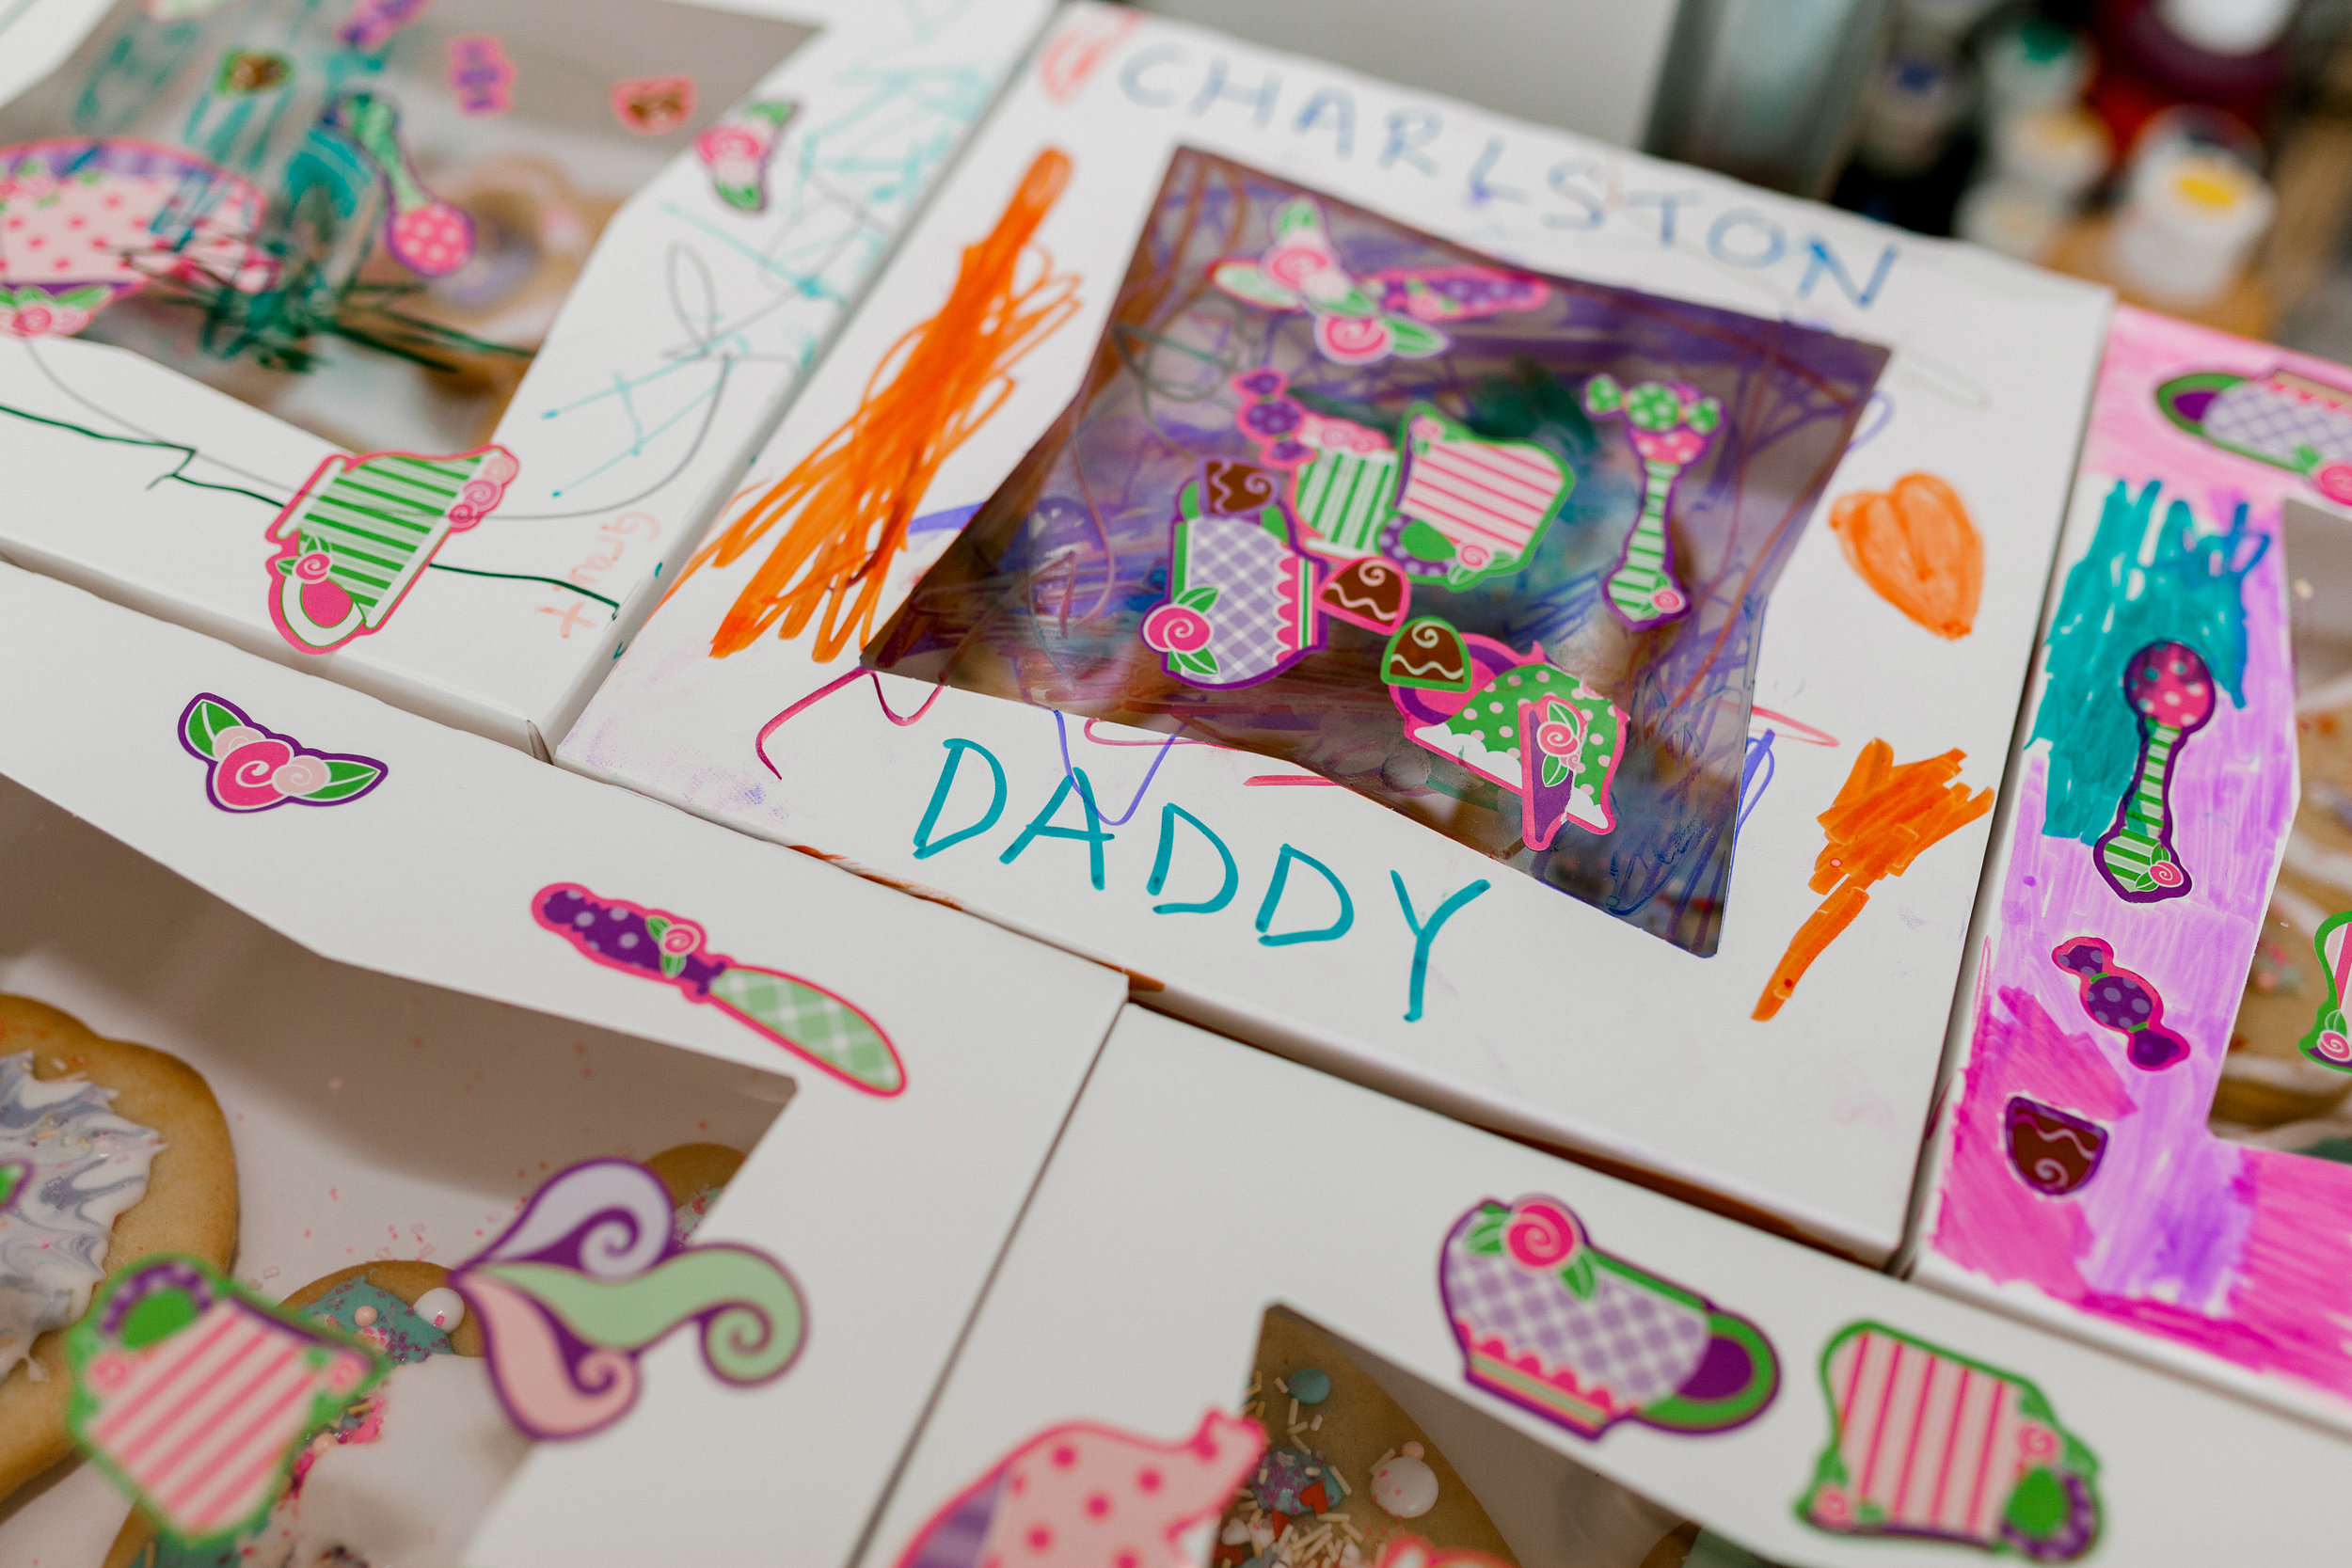 Cookie Box designs by the daughters